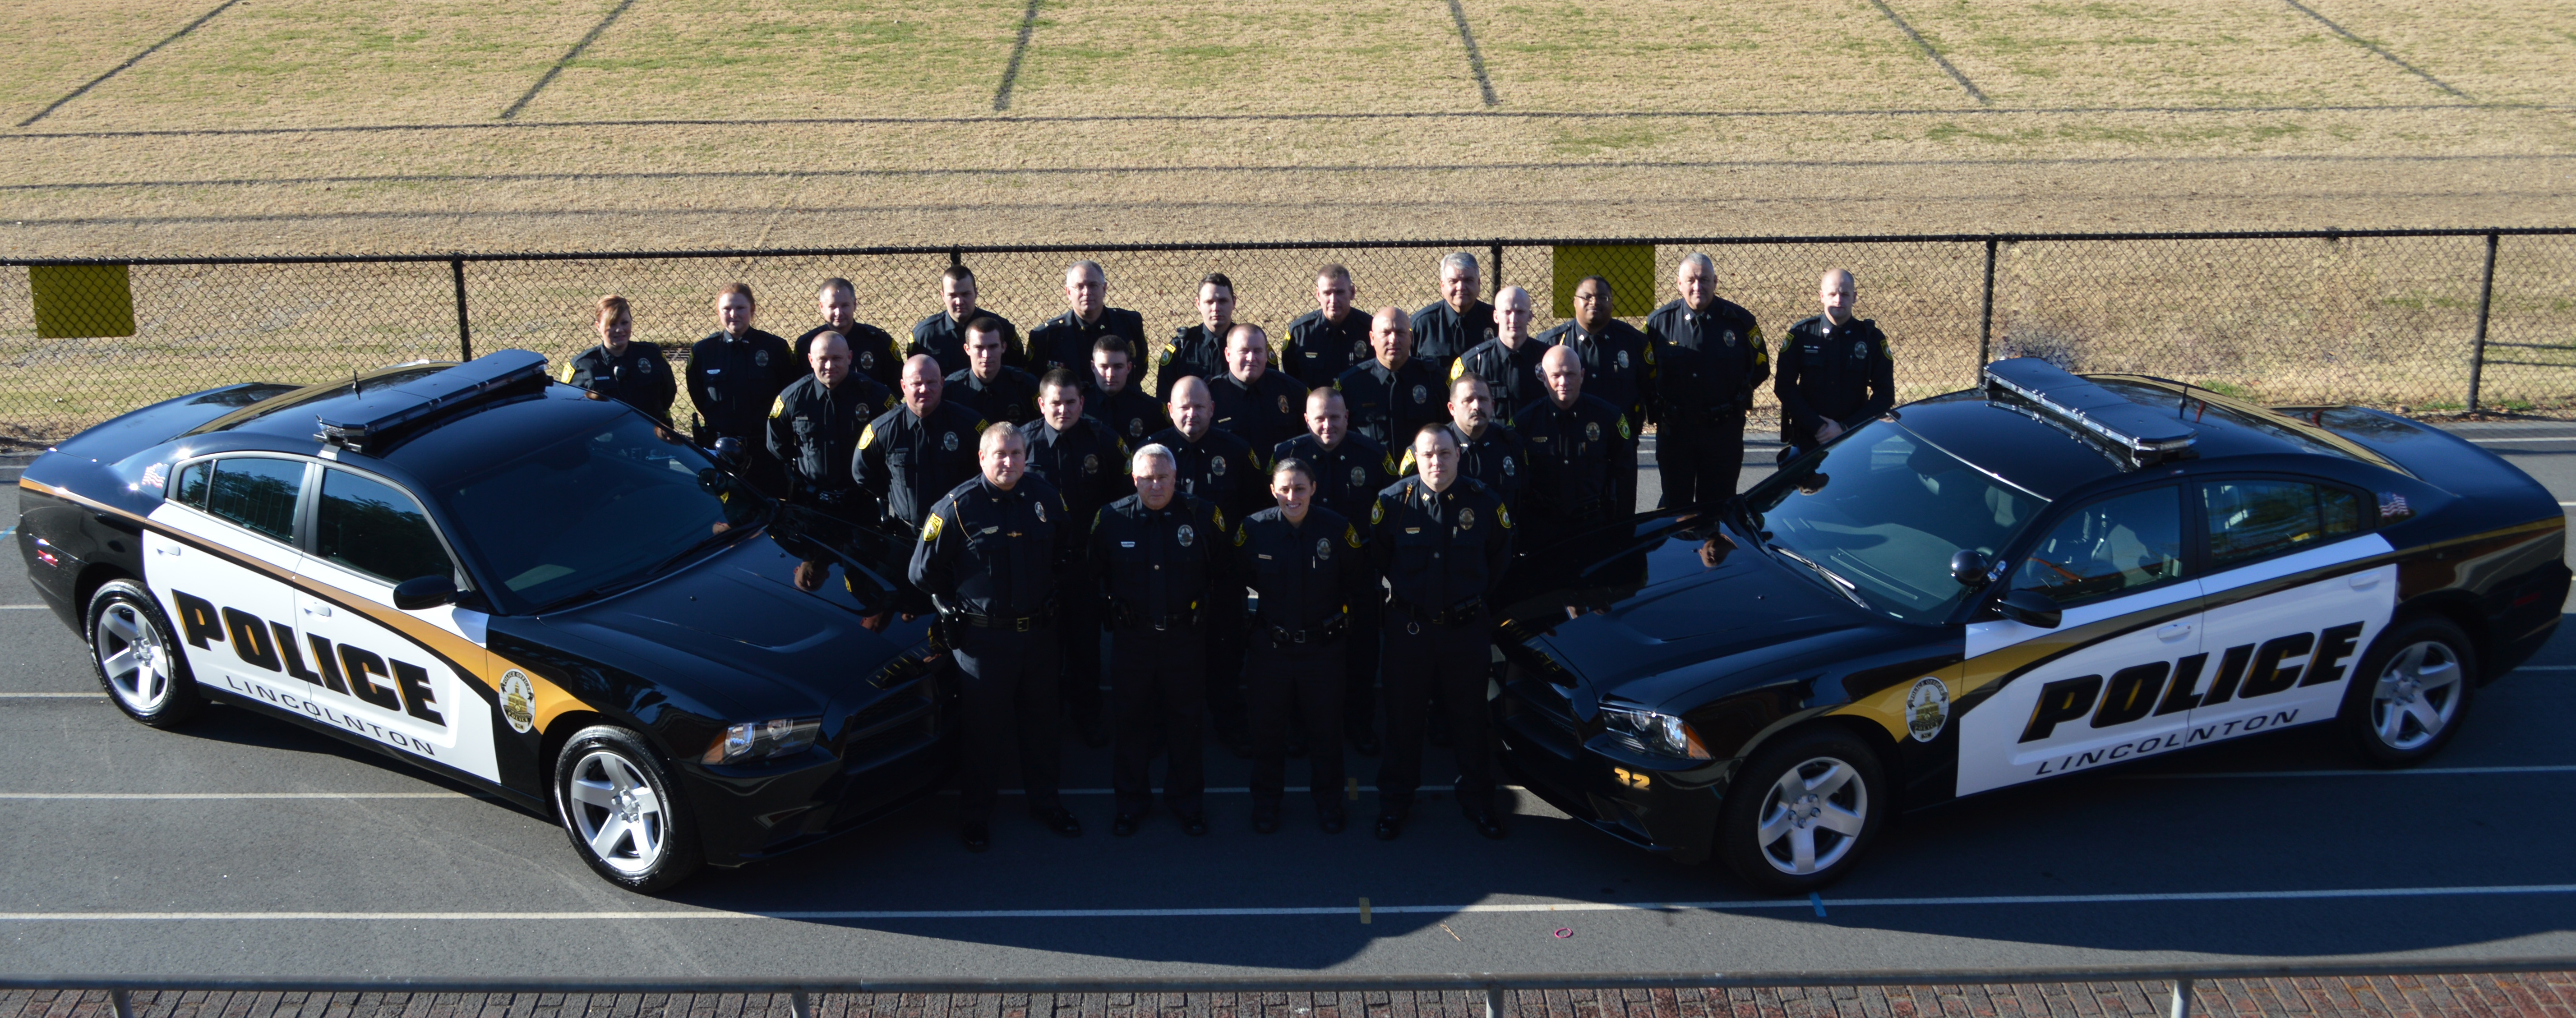 Police Department 2015 group photo